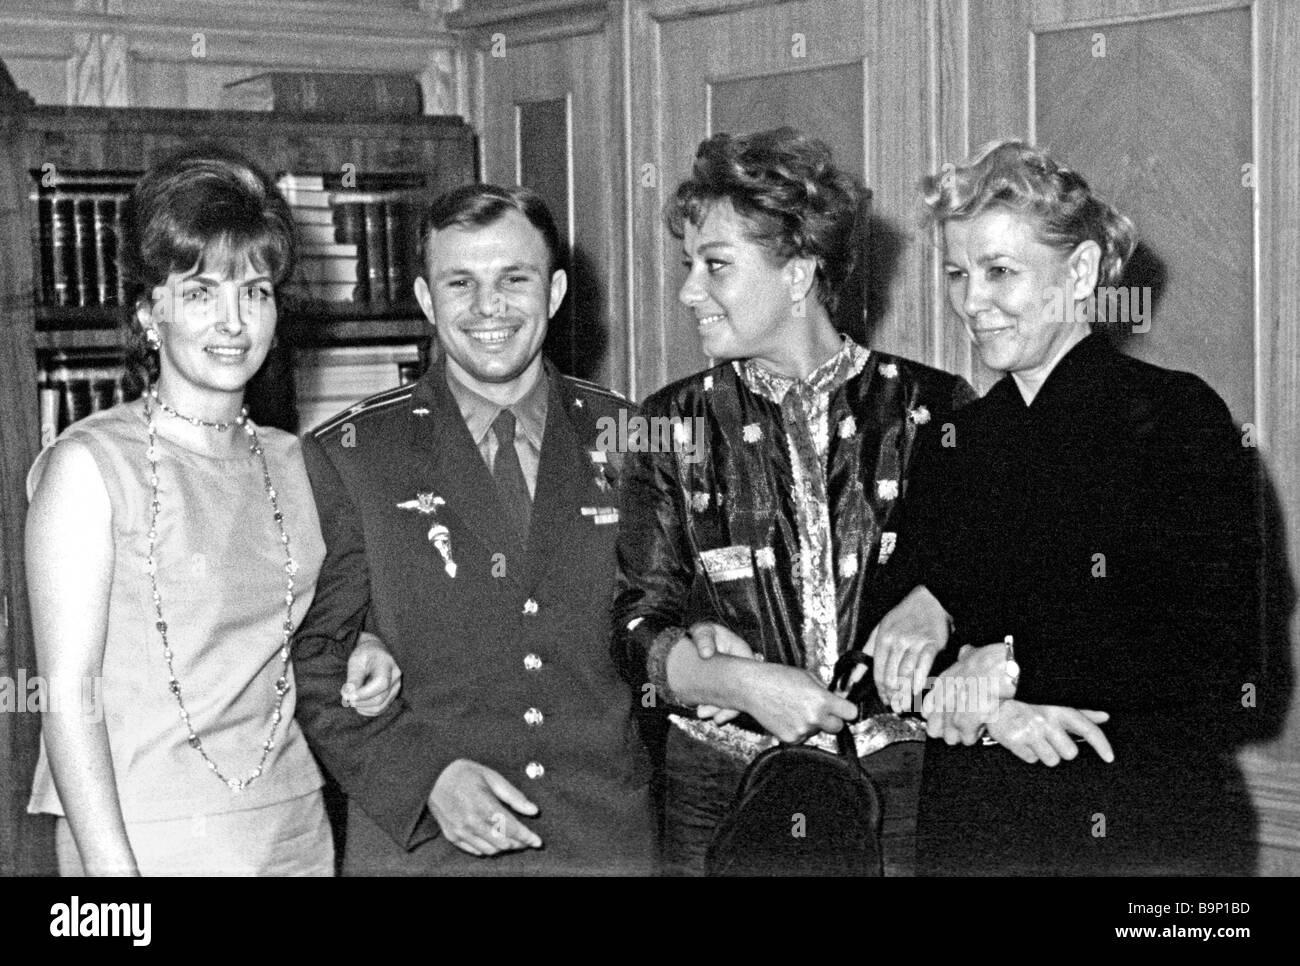 Italian actresses Gina Lollobrigida left and Marisa Merlini second right guests of the Second Moscow International - Stock Image